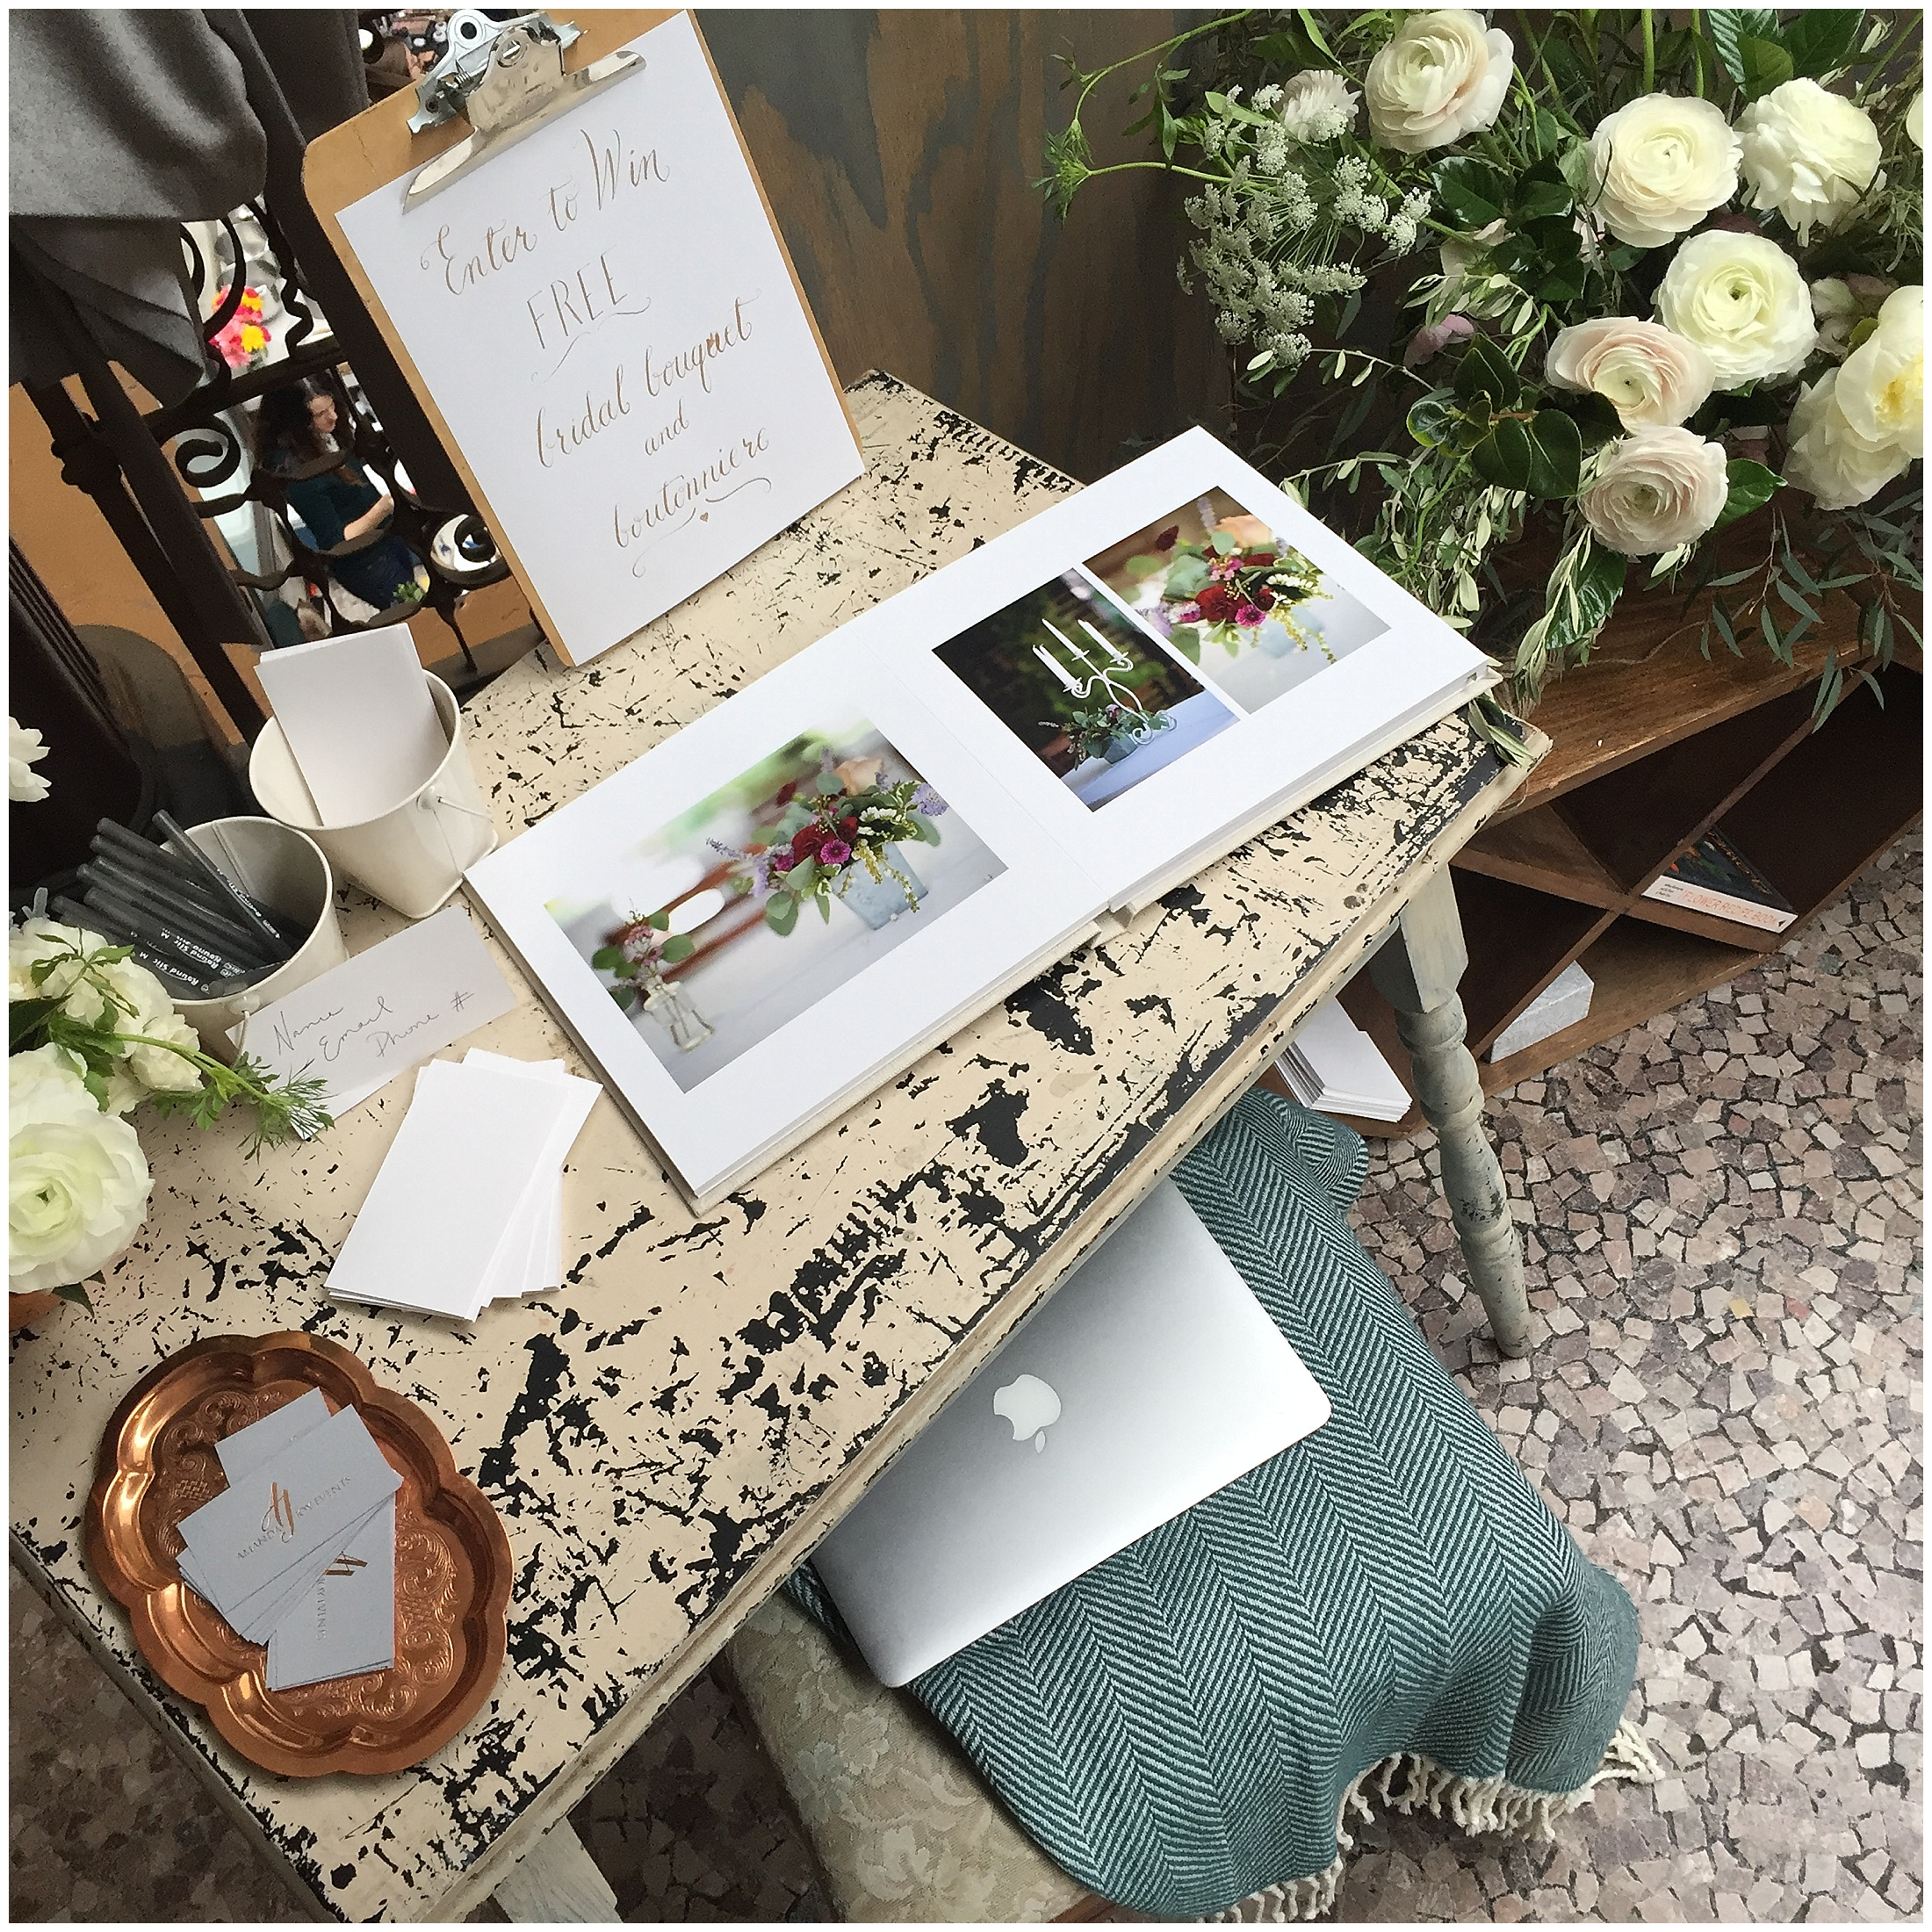 Everyone loved looking through the gorgeous album full of images by  Black Box Photography !